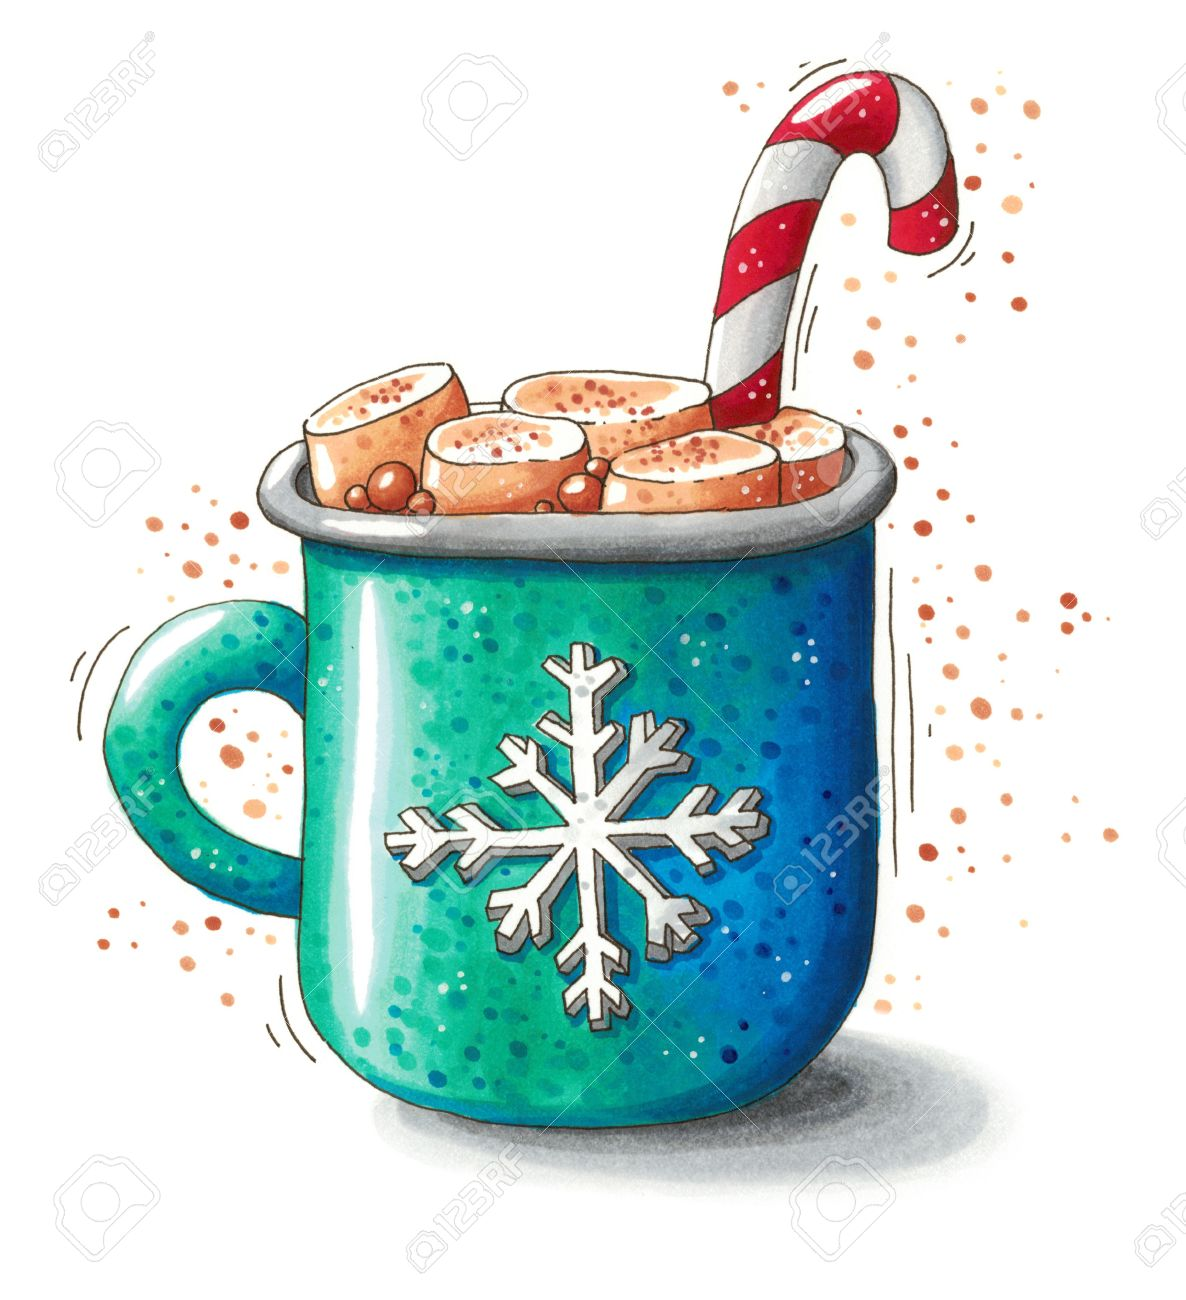 Cute hand drawn Christmas illustration of a mug with hot chocolate, melted marshmallows and a candy cane isolated on white background. This image can be used as a Christmas greeting card, poster or print. - 65523155